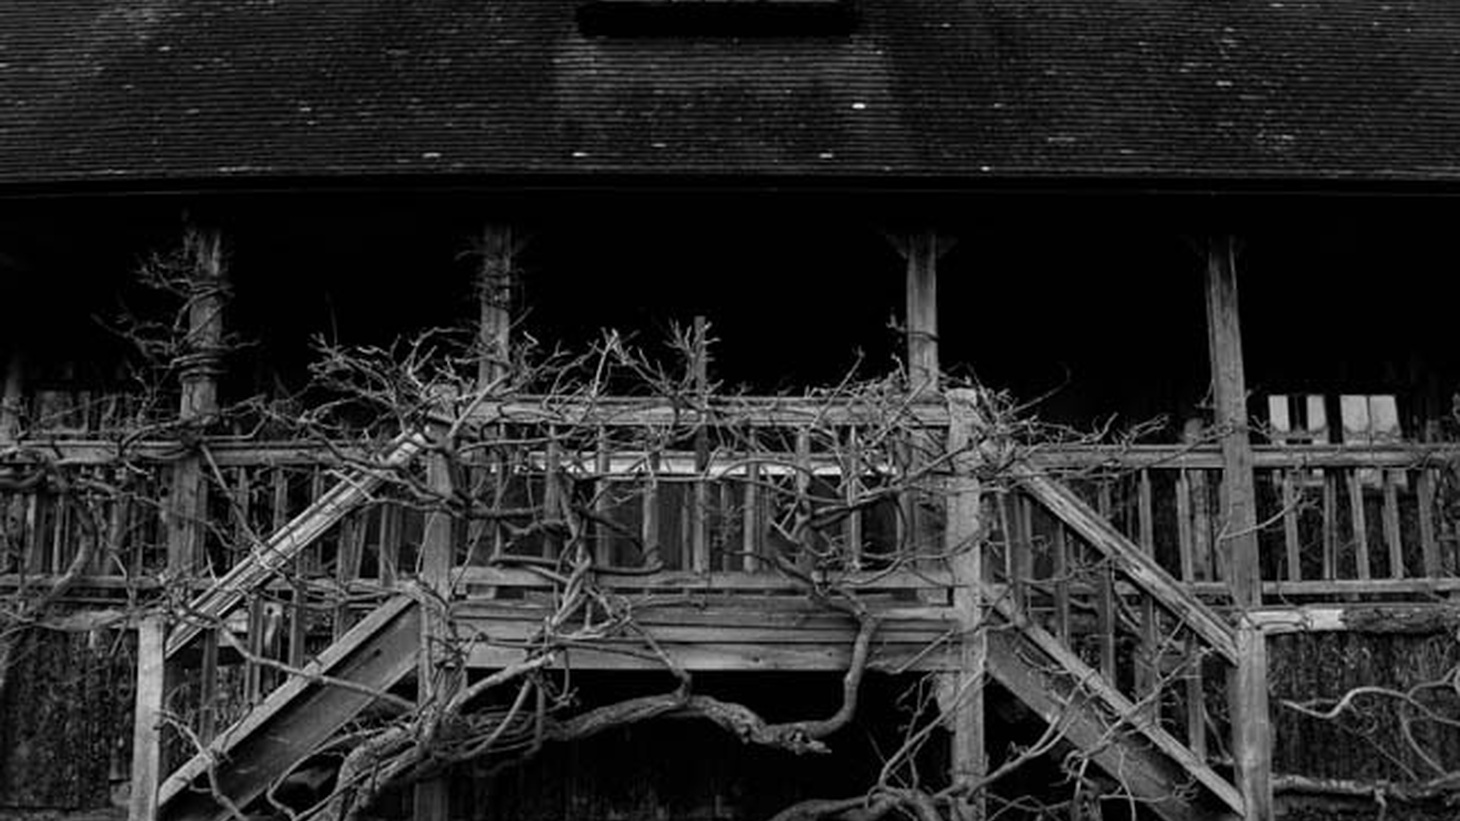 It's a bonus episode! We'll be back in January, but we've got two spooky stories to tide you over – a Halloween classic, and a brand-new, never-before-heard story of a haunted house gone terribly wrong.